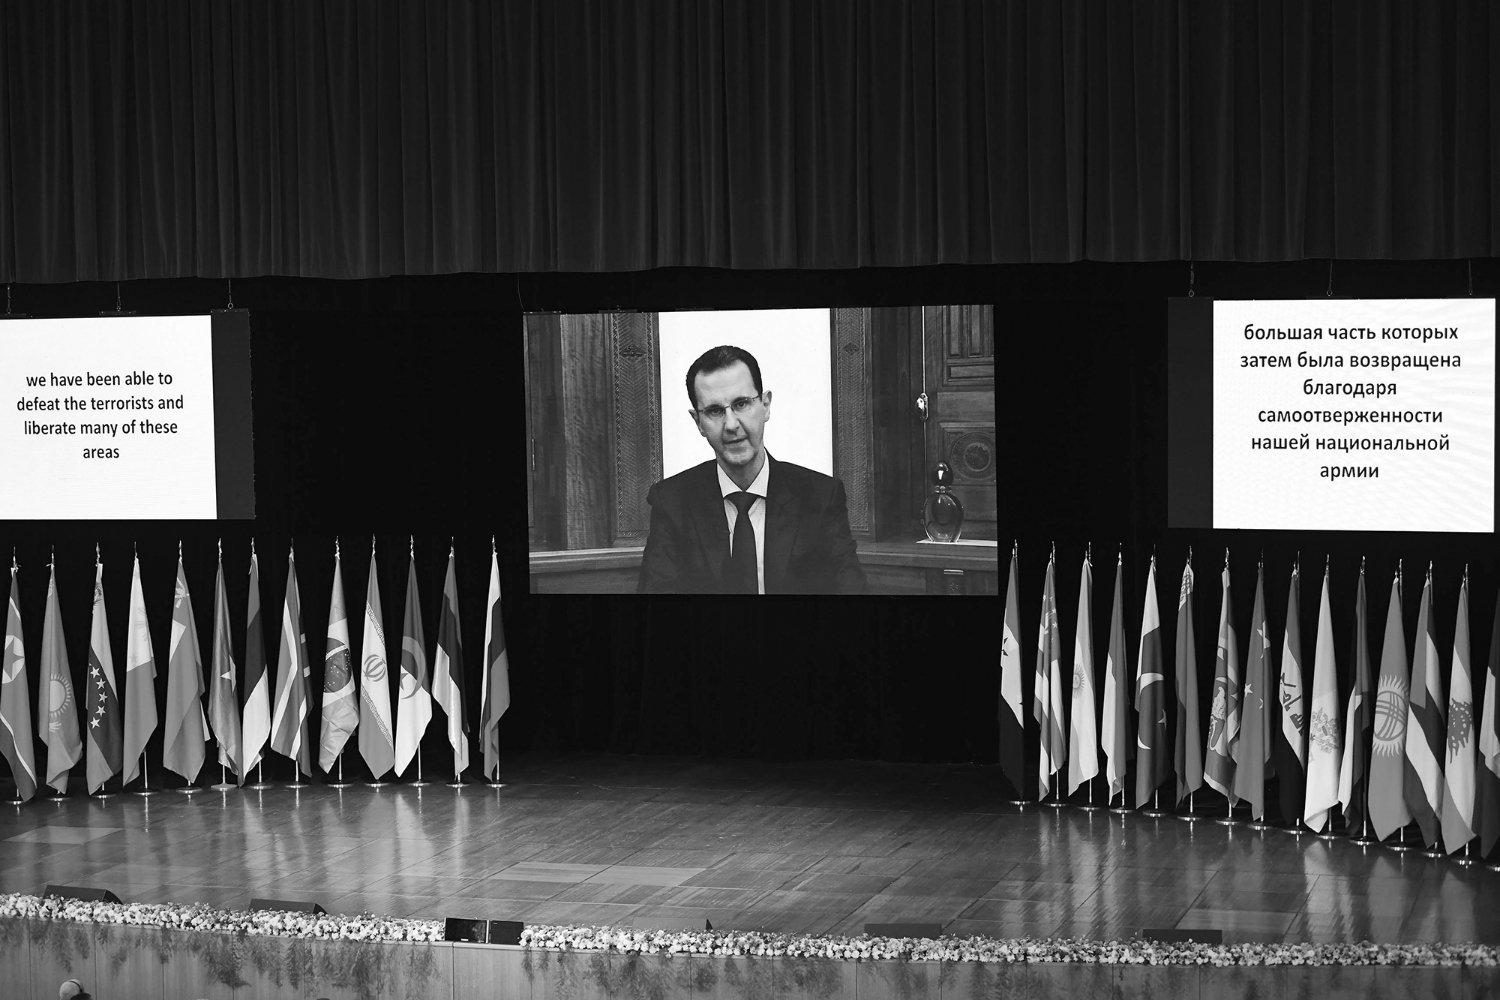 Syrian President Bashar Al Assad at the opening of the conference for the return of refugees.